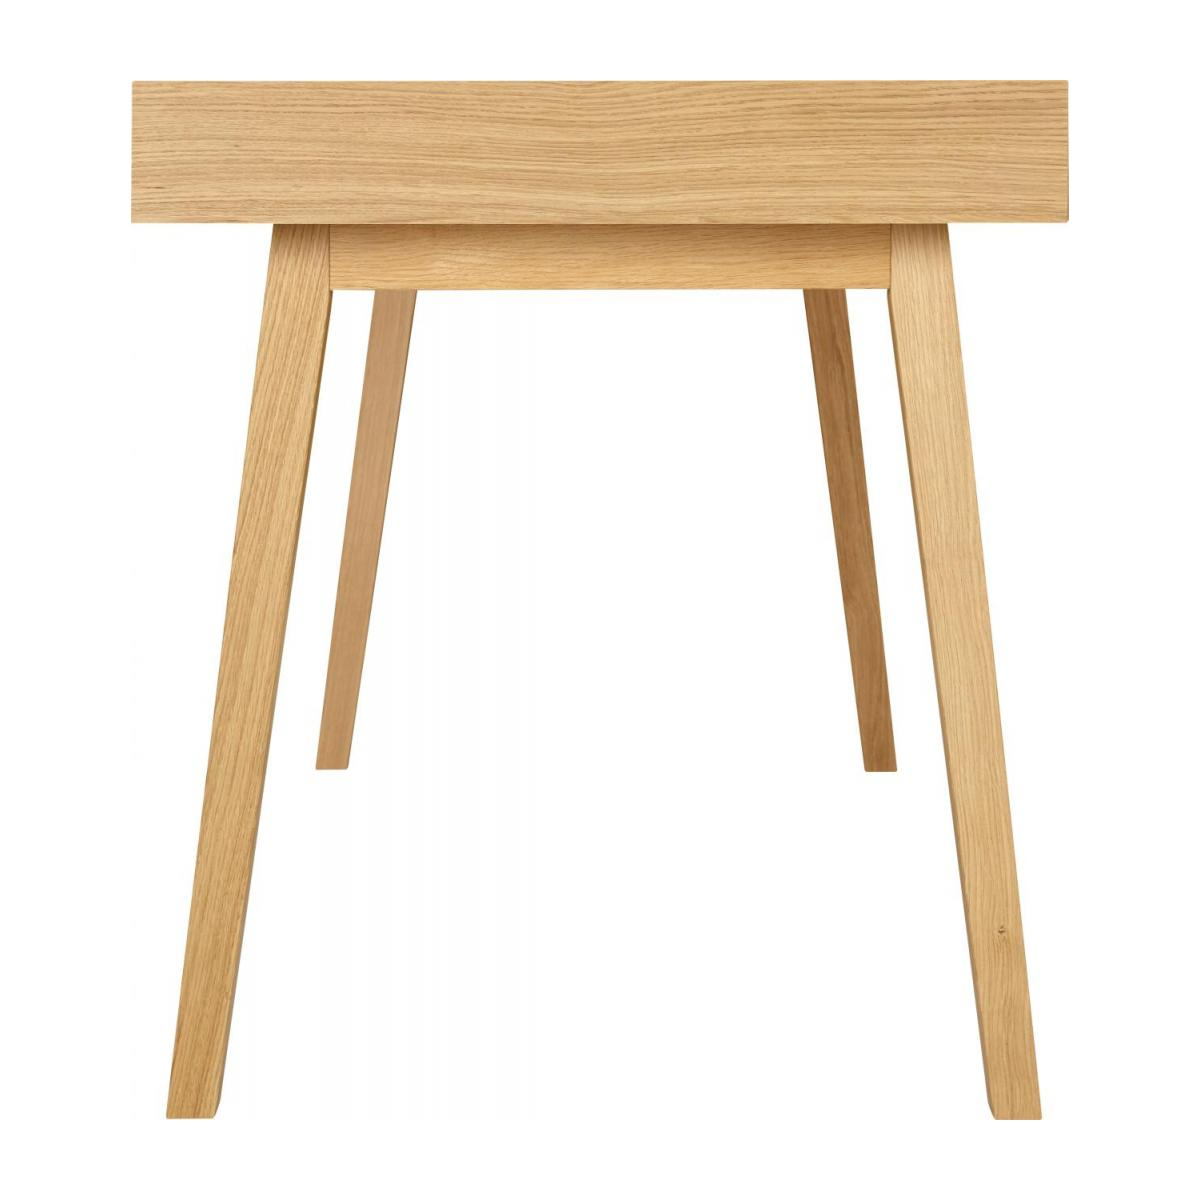 Big oak desk n°8